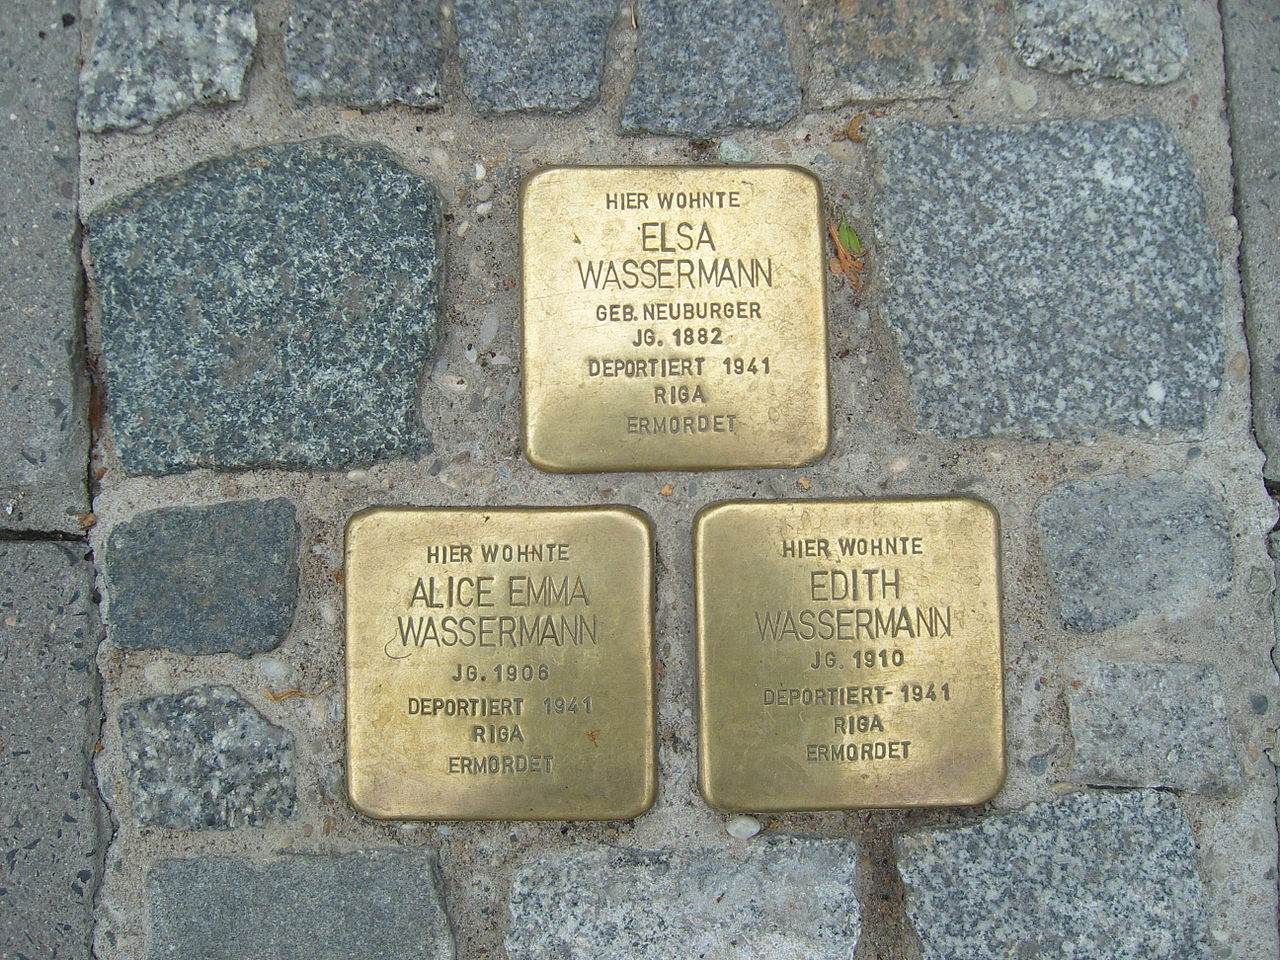 Stolpersteine willylessing1 ba.JPG